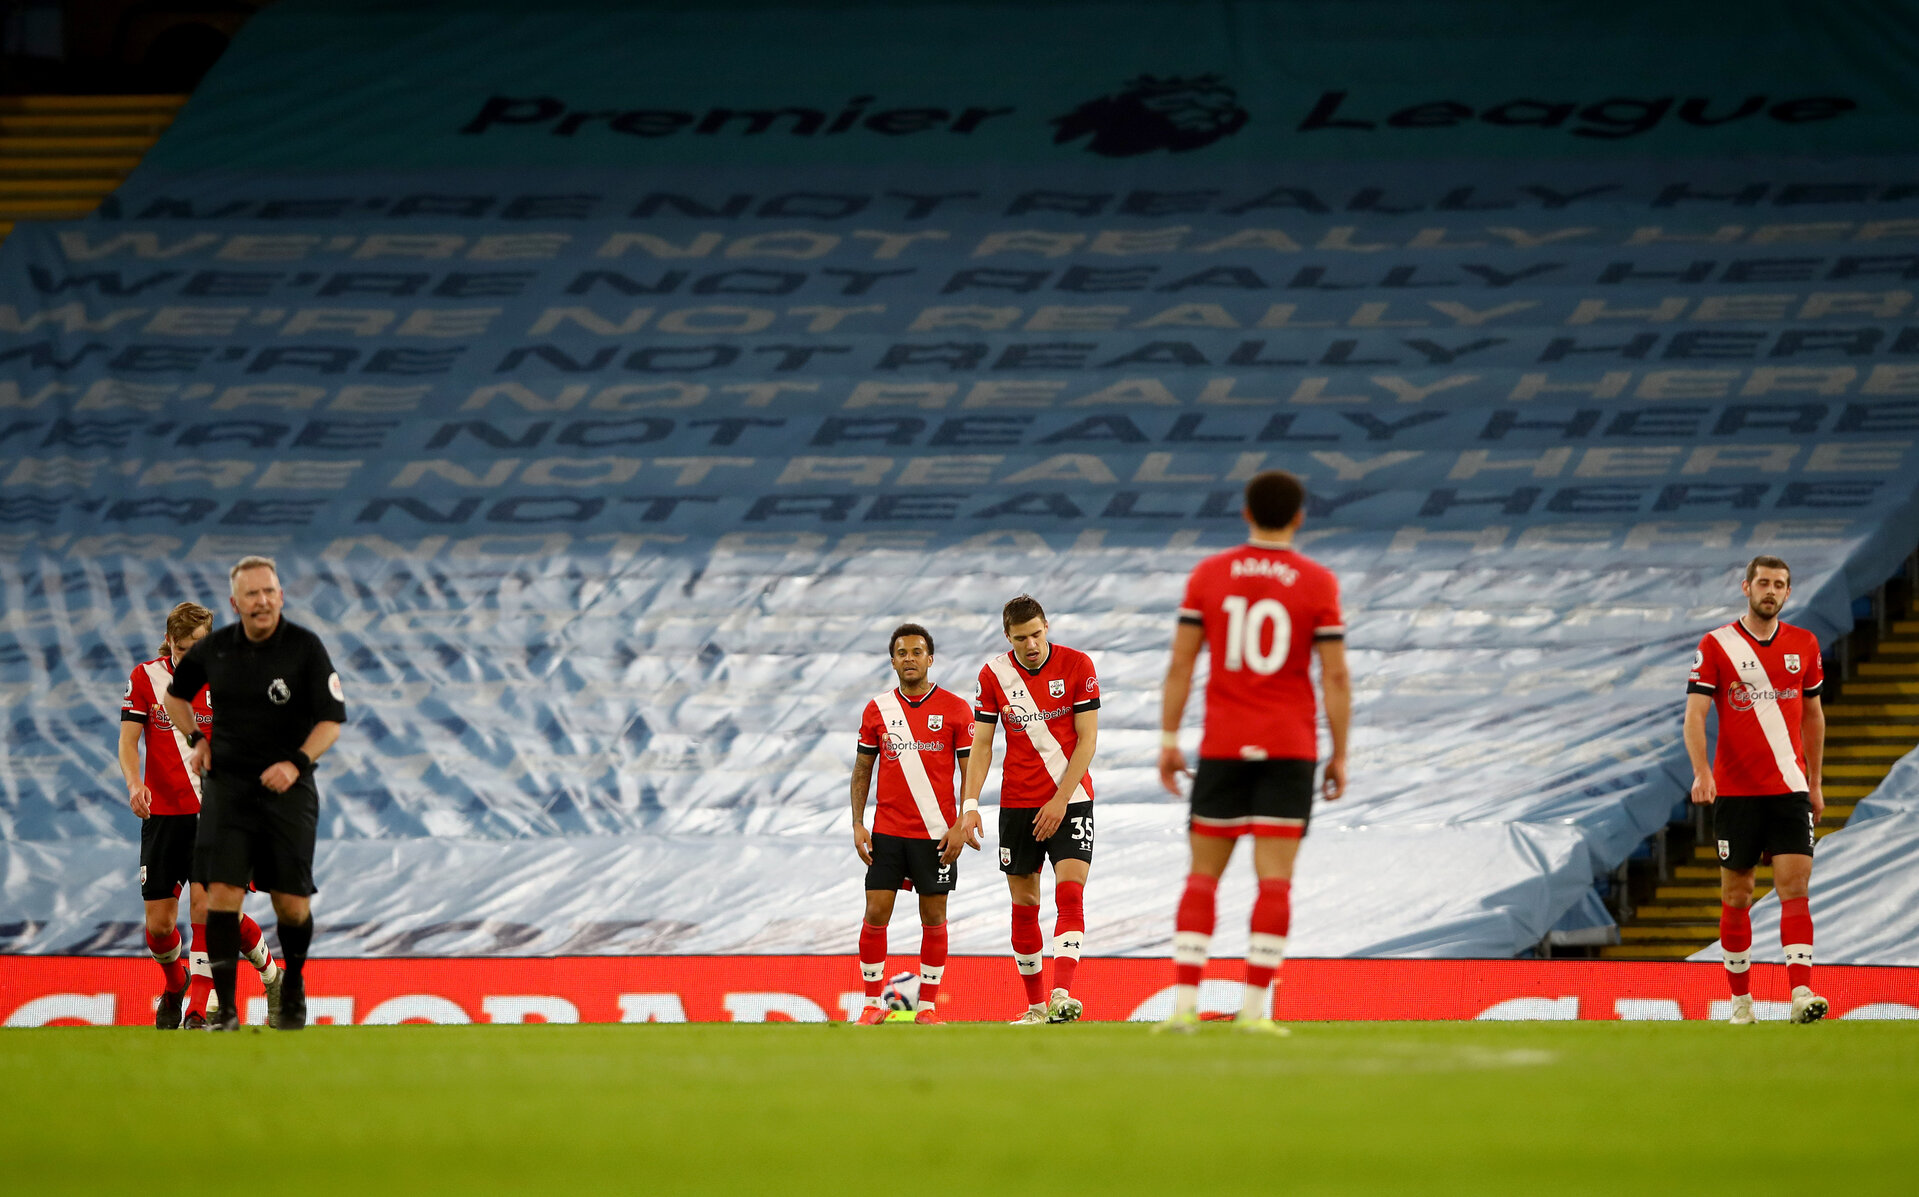 MANCHESTER, ENGLAND - MARCH 10: Southampton players dejected during the Premier League match between Manchester City and Southampton at Etihad Stadium on March 10, 2021 in Manchester, England. Sporting stadiums around the UK remain under strict restrictions due to the Coronavirus Pandemic as Government social distancing laws prohibit fans inside venues resulting in games being played behind closed doors. (Photo by Matt Watson/Southampton FC via Getty Images)